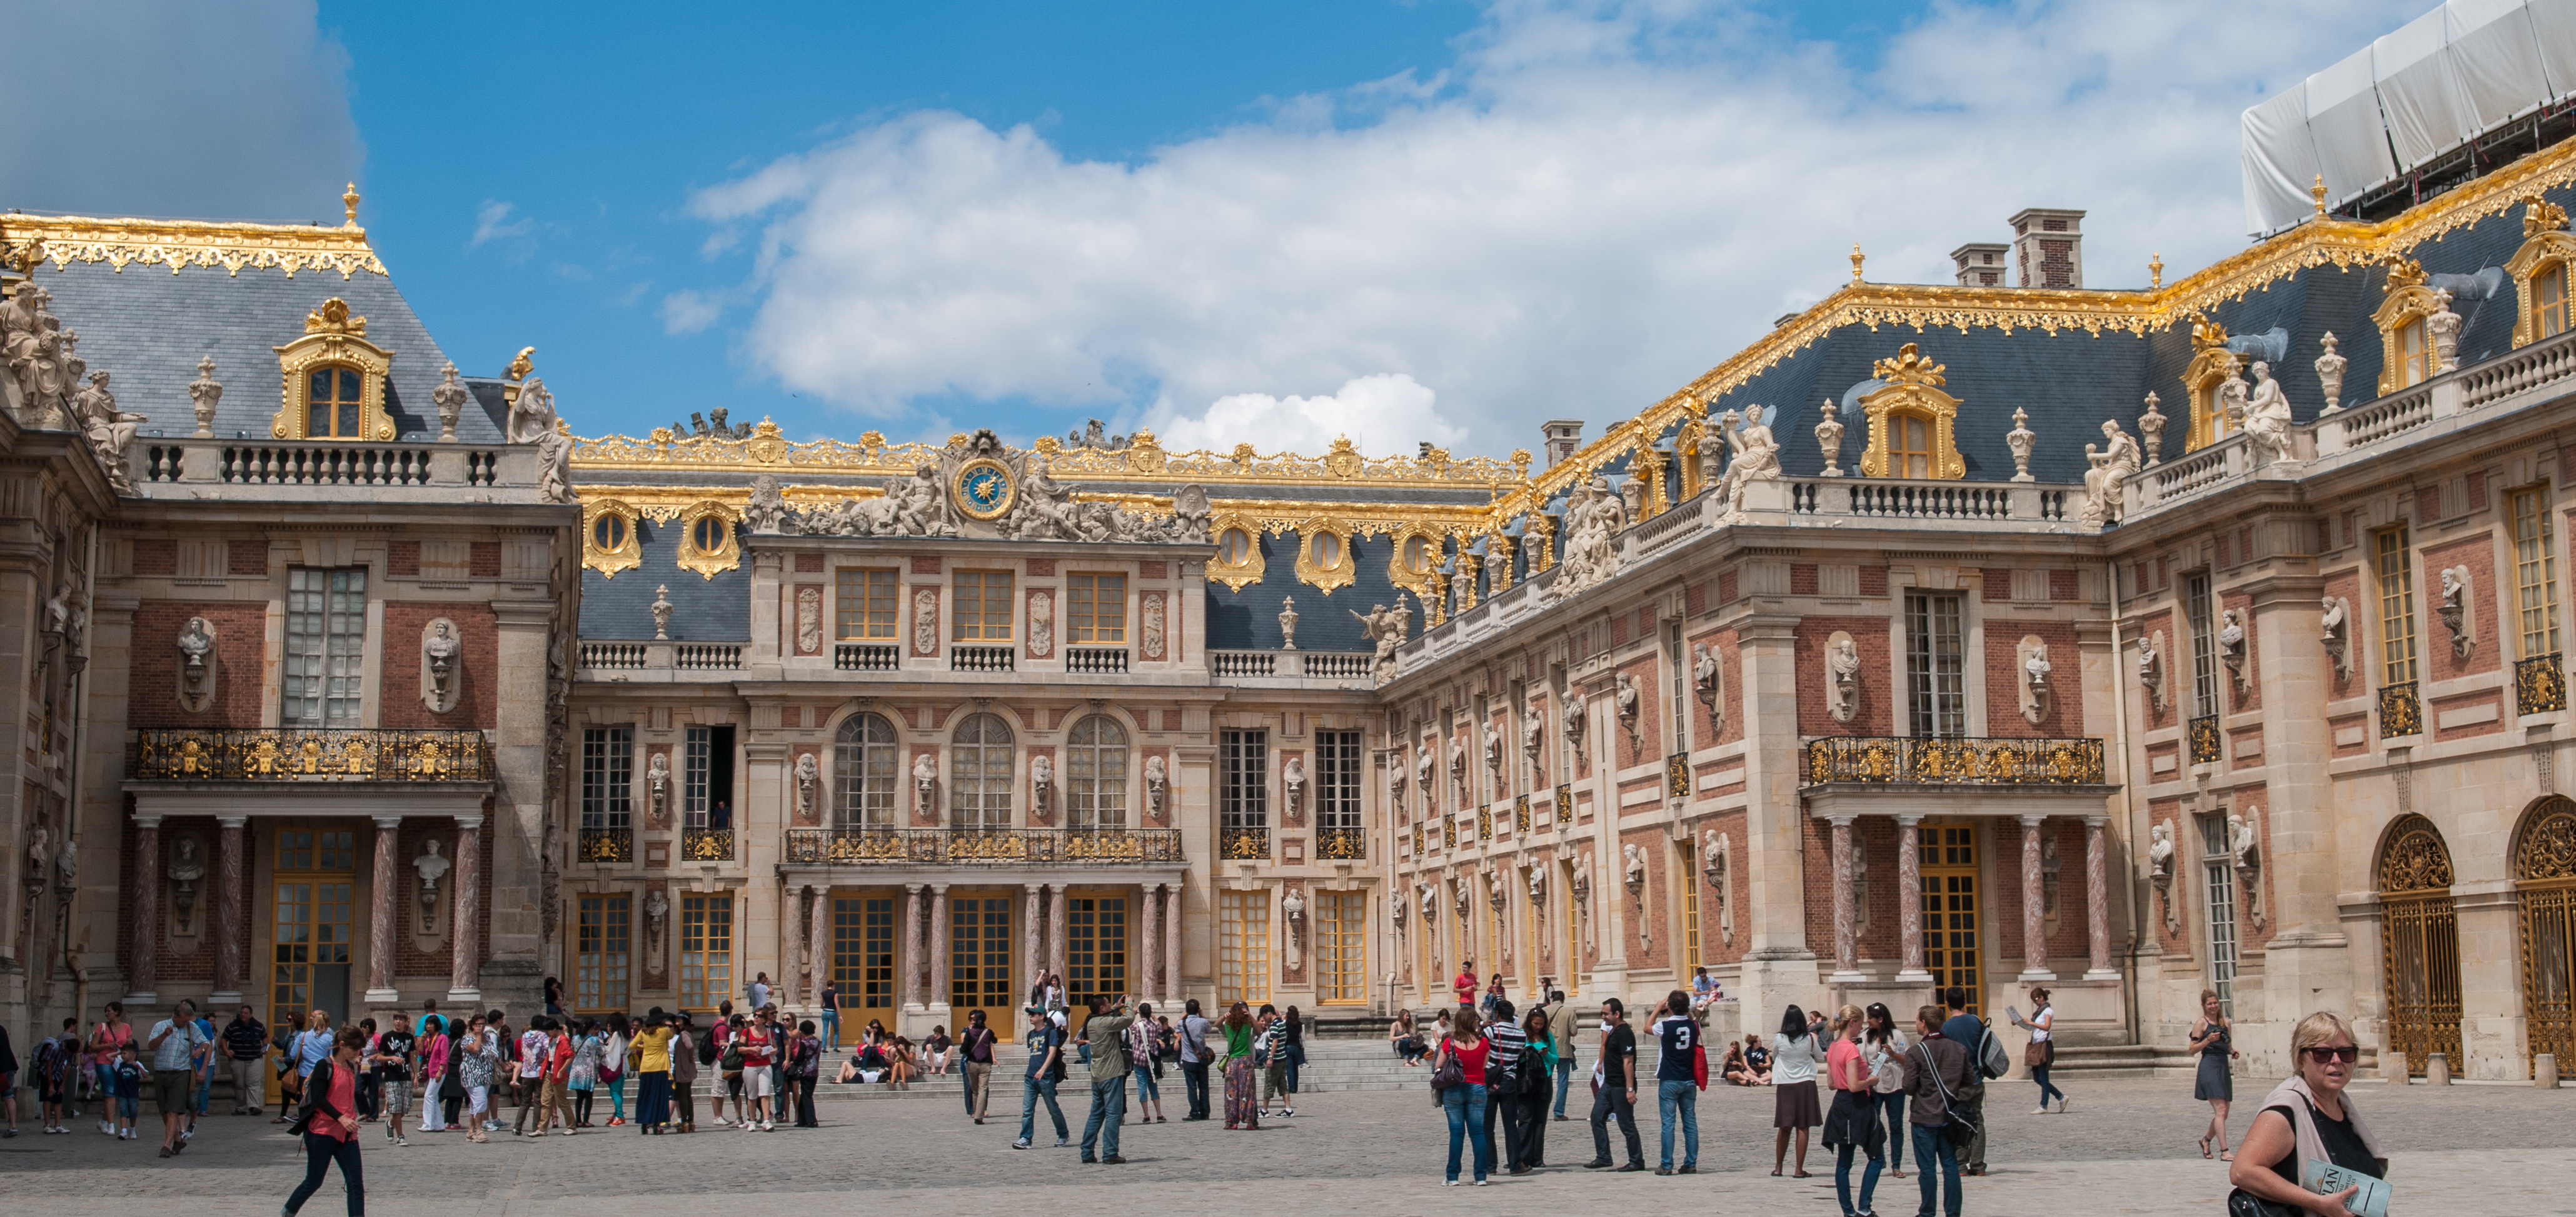 a historical review of france the palace of versailles Discover the palace of versailles history : an ancien hunting lodge turned in a wonderful palace during the reign of louis xiv.